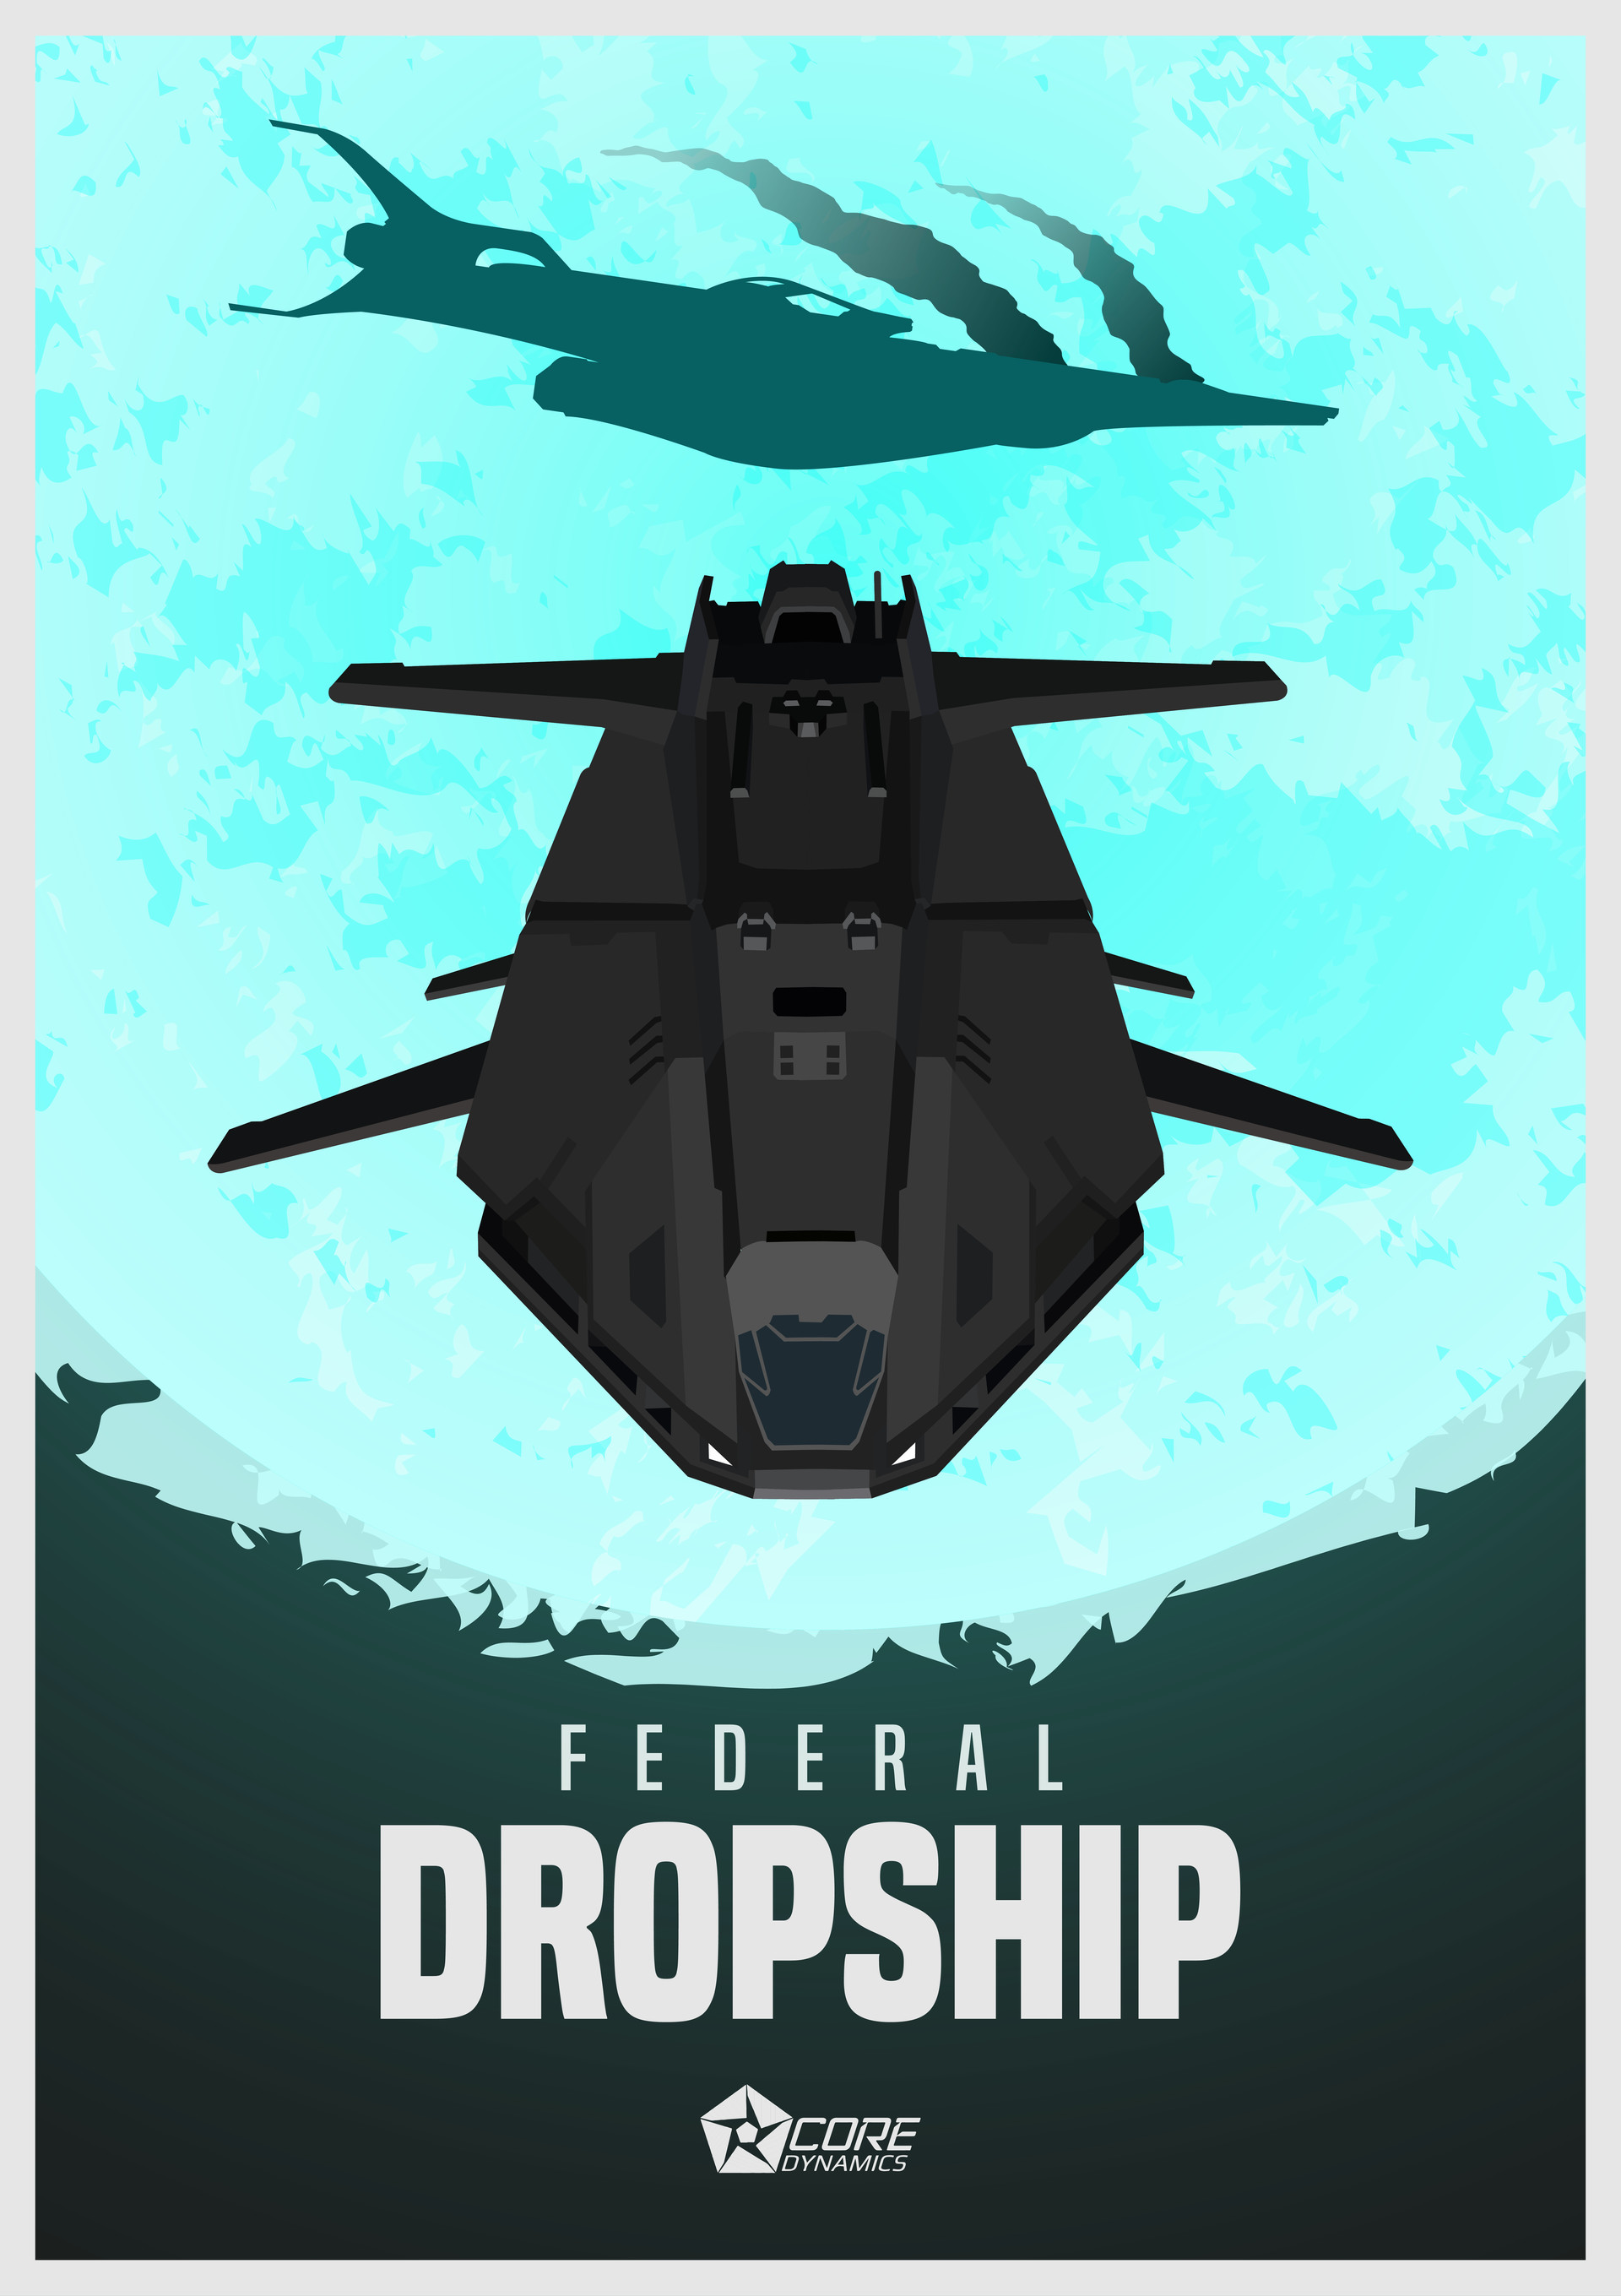 Mathew maddison dropship new blue 01